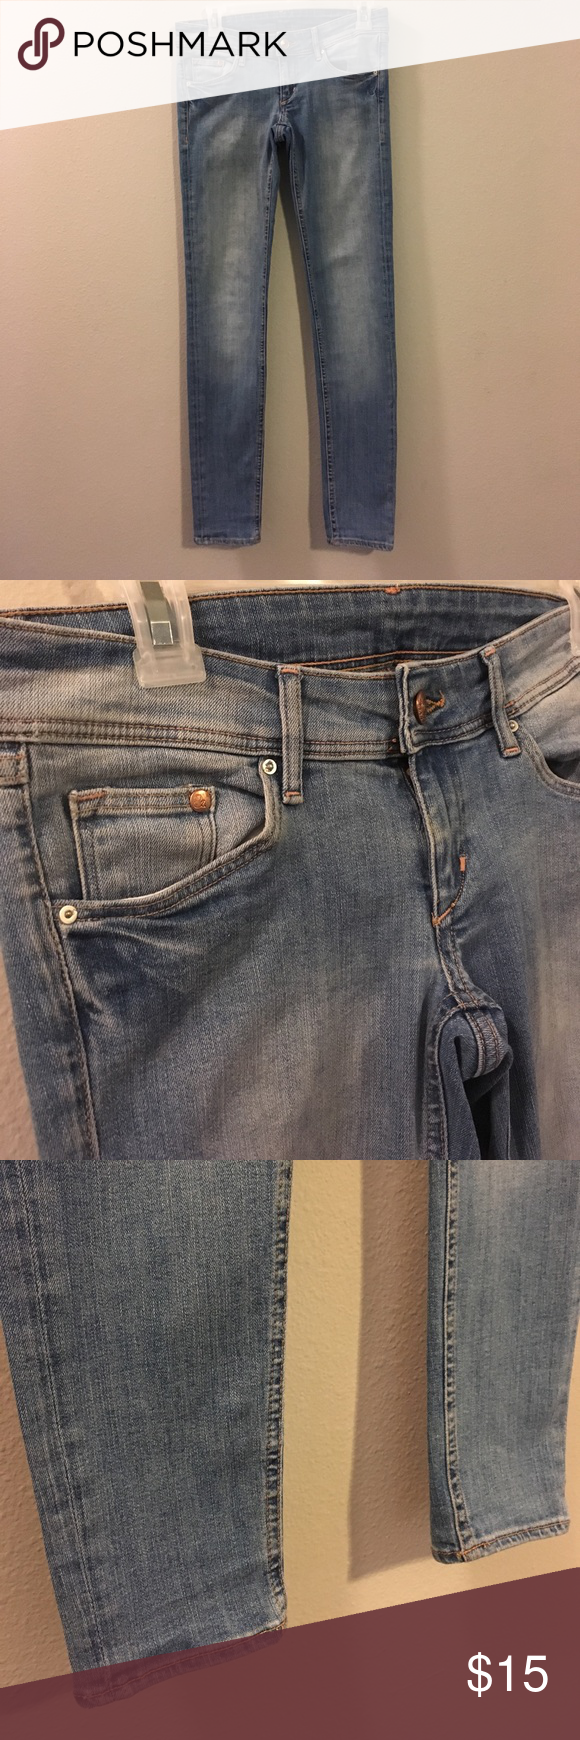 "H&M Super Skinny Low Rise Light Wash Denim Jeans H&M's Super Skinny Leg 5 pocket, low-rise jeans in washed superstretch denim with intentional fade down the legs. In excellent condition! Inseam 30"" H&M Jeans Skinny"